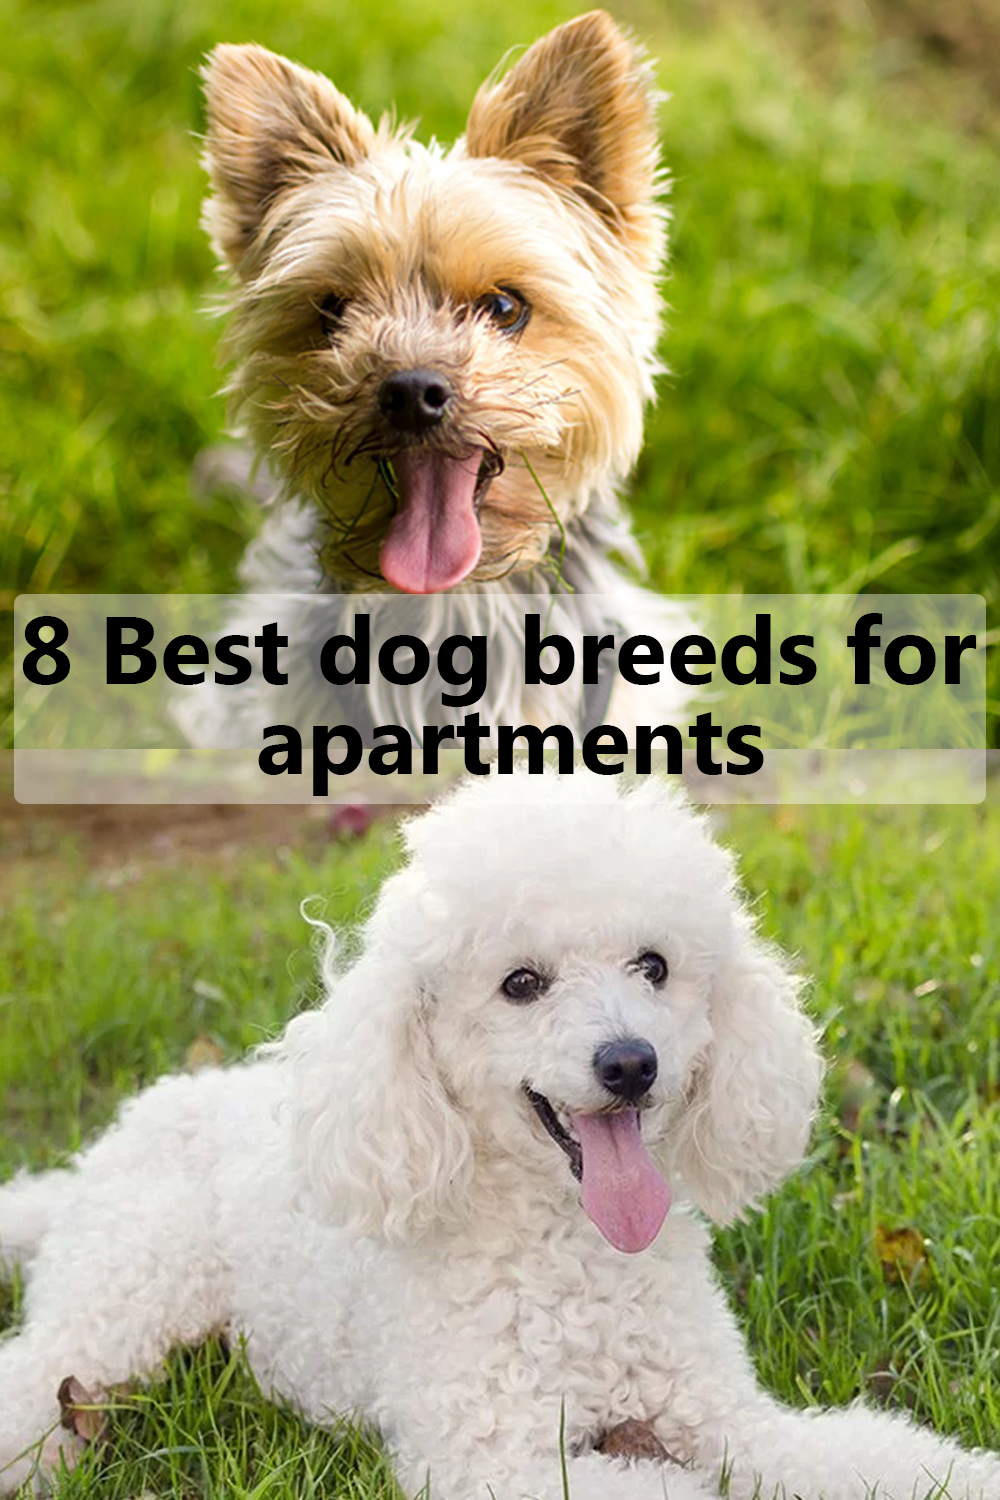 8 Best Little Dog Breeds For Apartments Dog Breeds Best Small Dogs White Dog Breeds